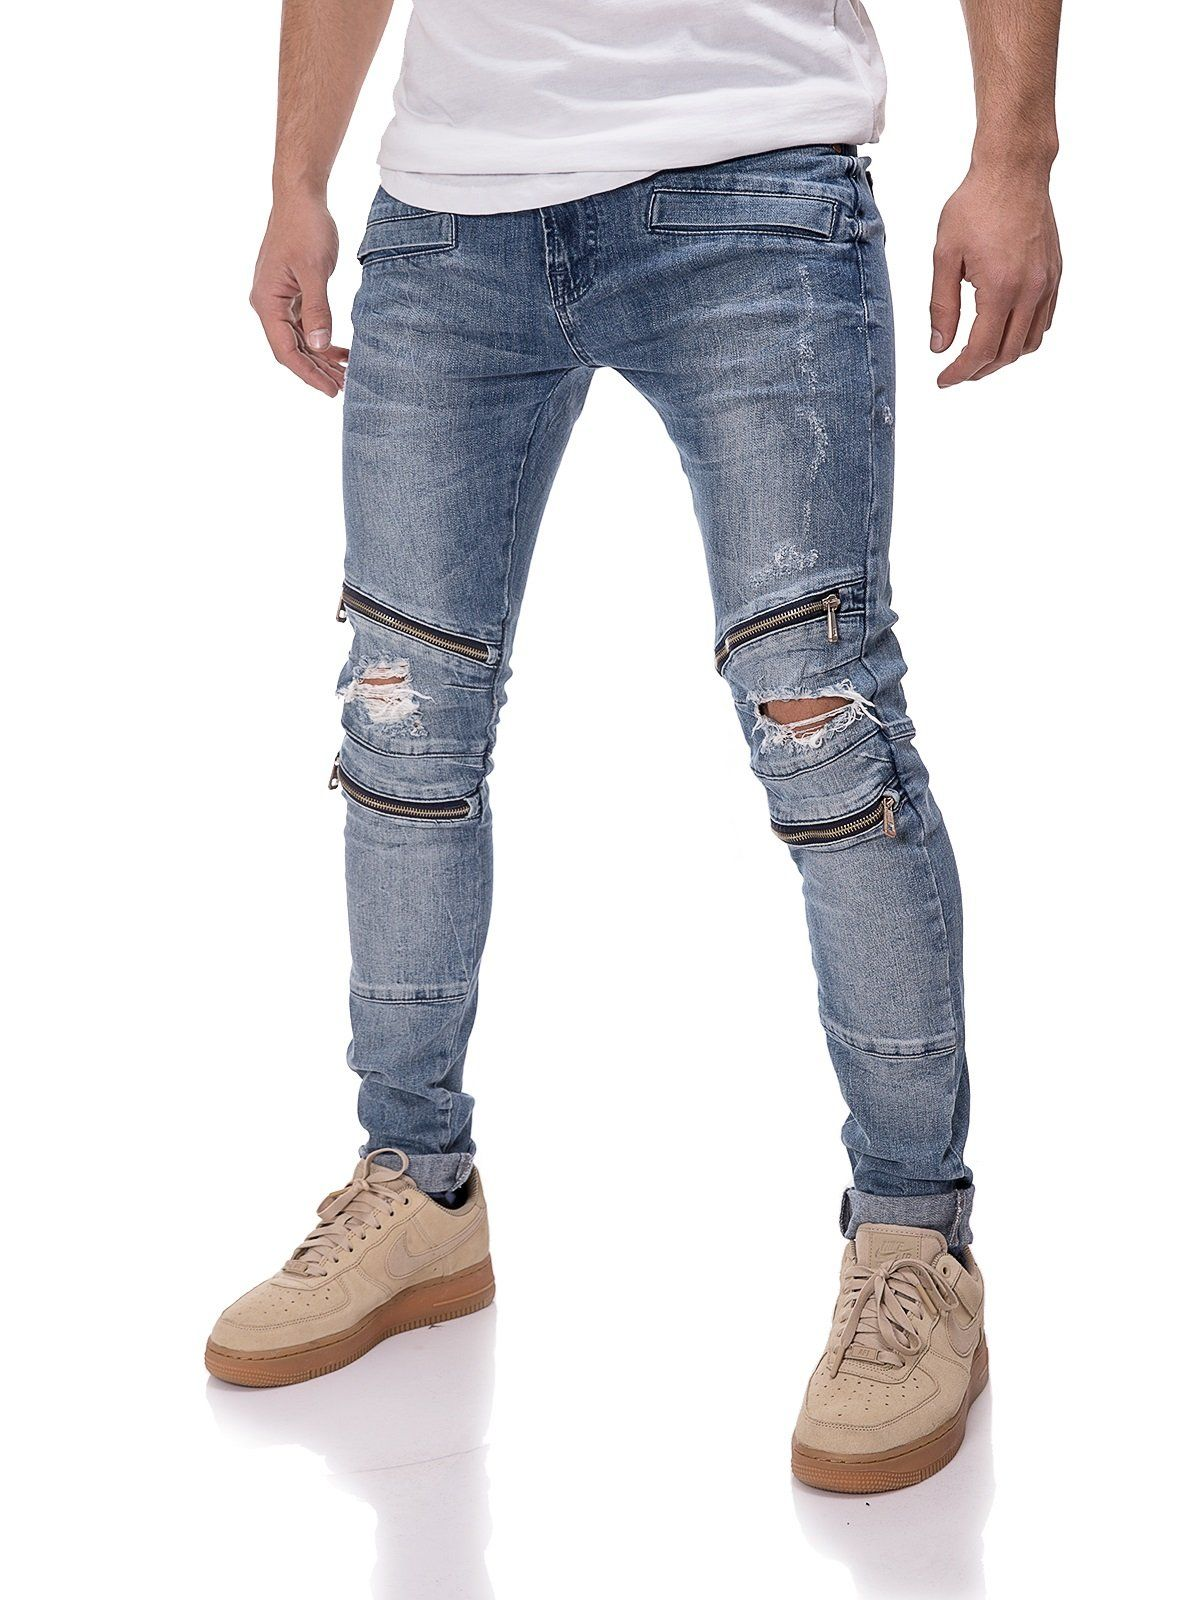 c0151d3cad7a 2Y Men Slim Fit Knee Ripped Zippers Jeans - Blue 3623 in 2019 ...